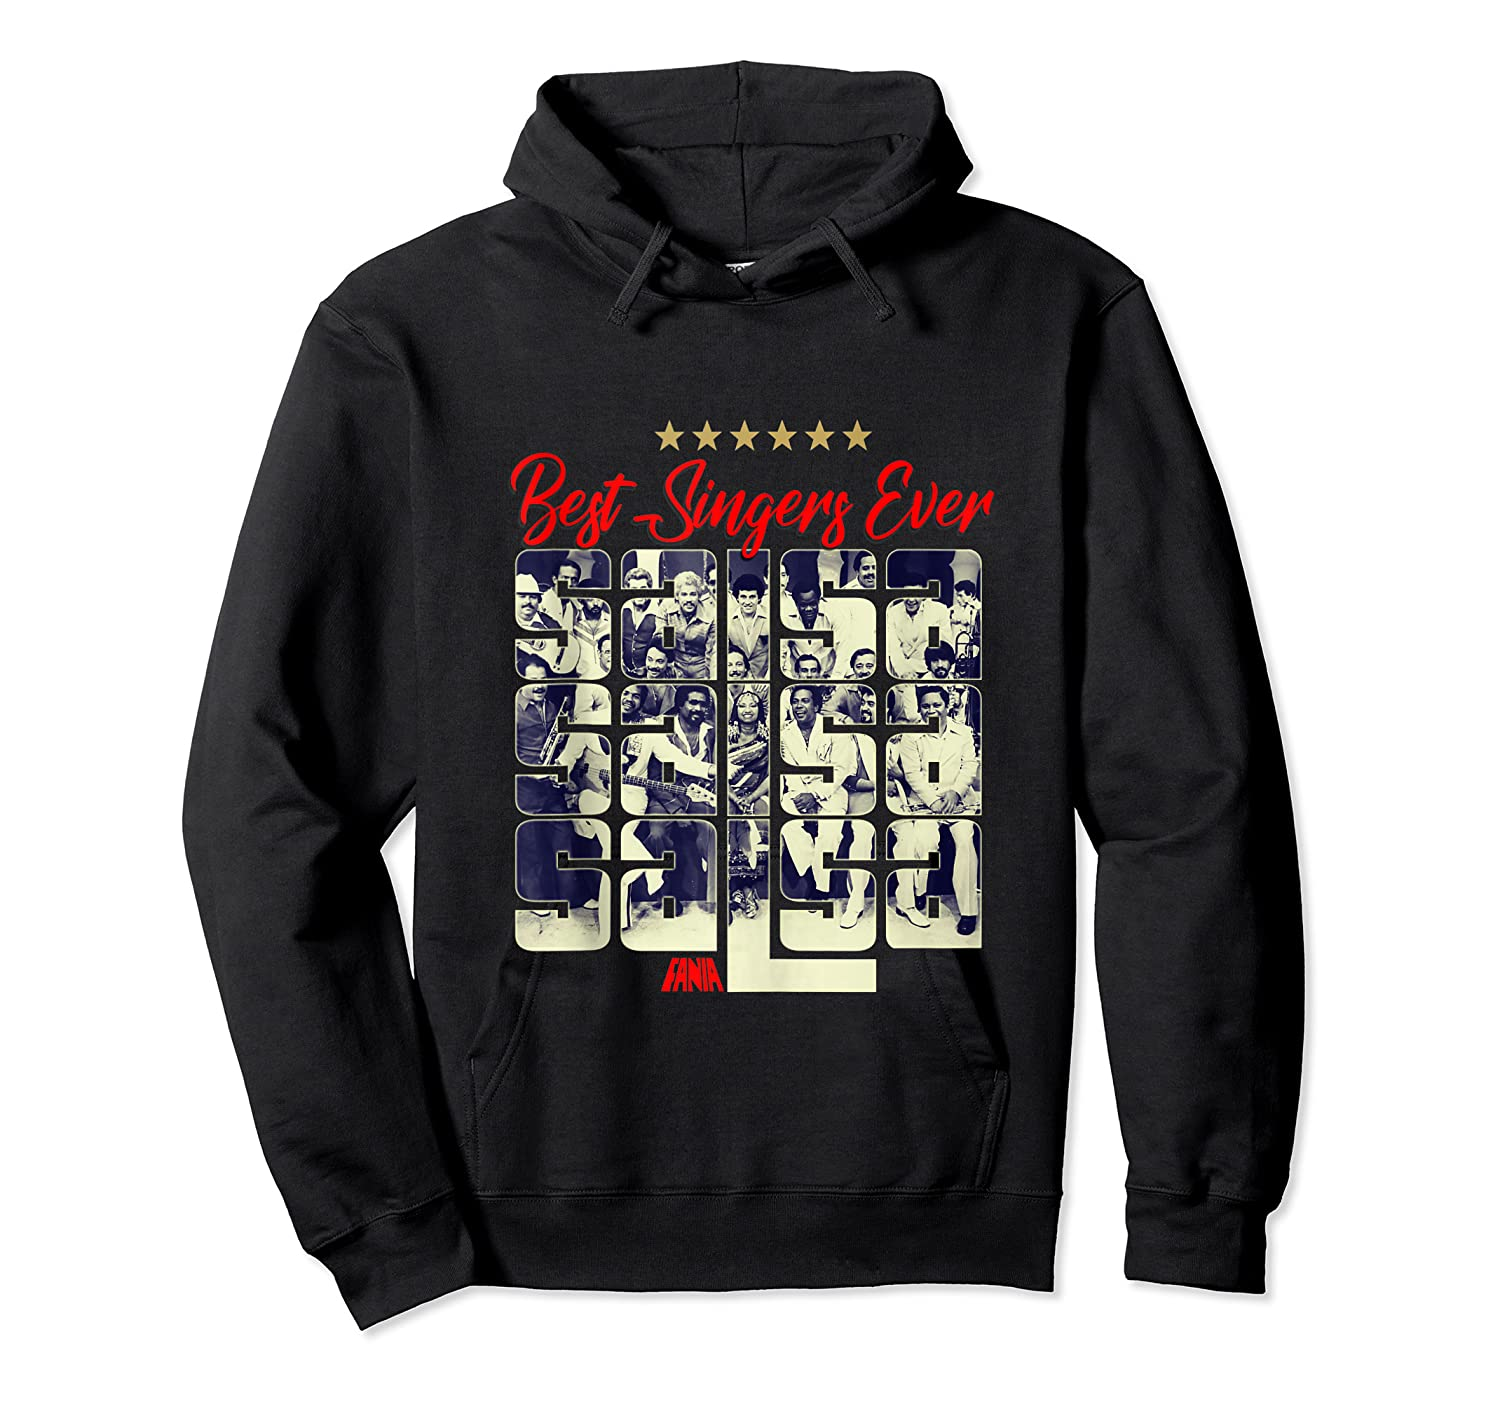 Fania All Star Best Singers Ever Salsa Power Tank Top Shirts Unisex Pullover Hoodie